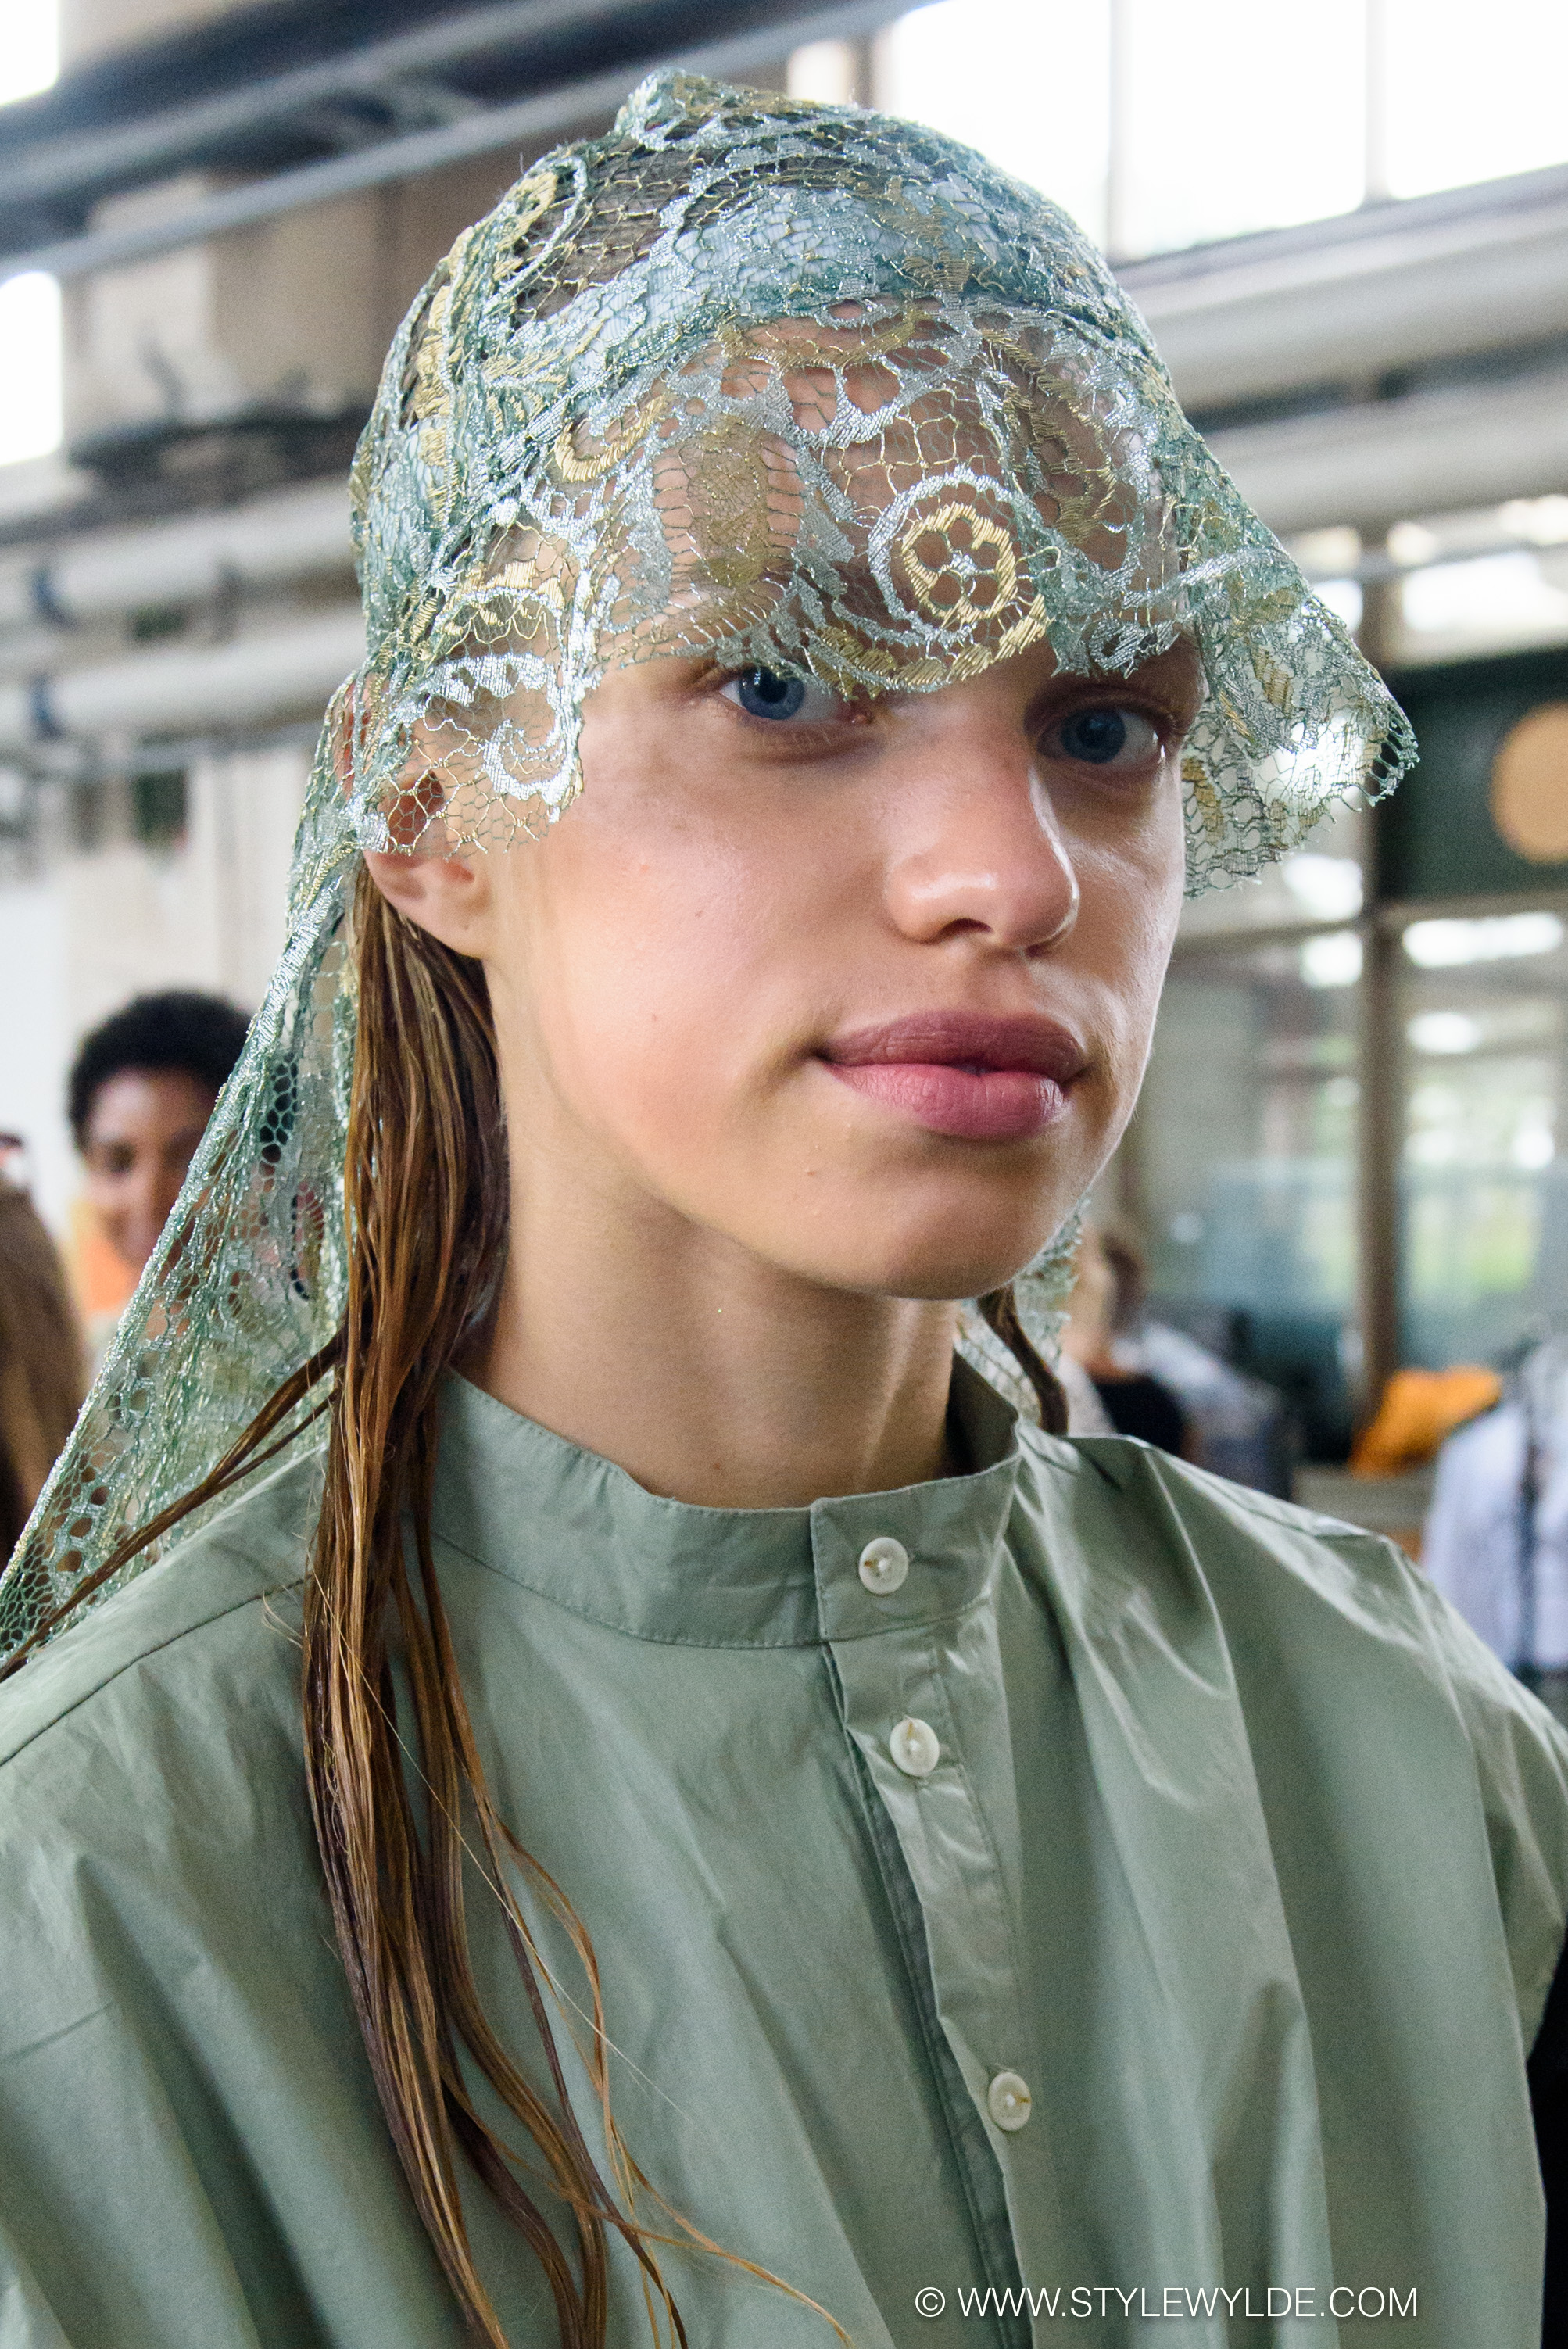 Tropics meet techno - with a serious dose of sporty street style, was the vibe at the Astrid Andersen Spring 2018 show.